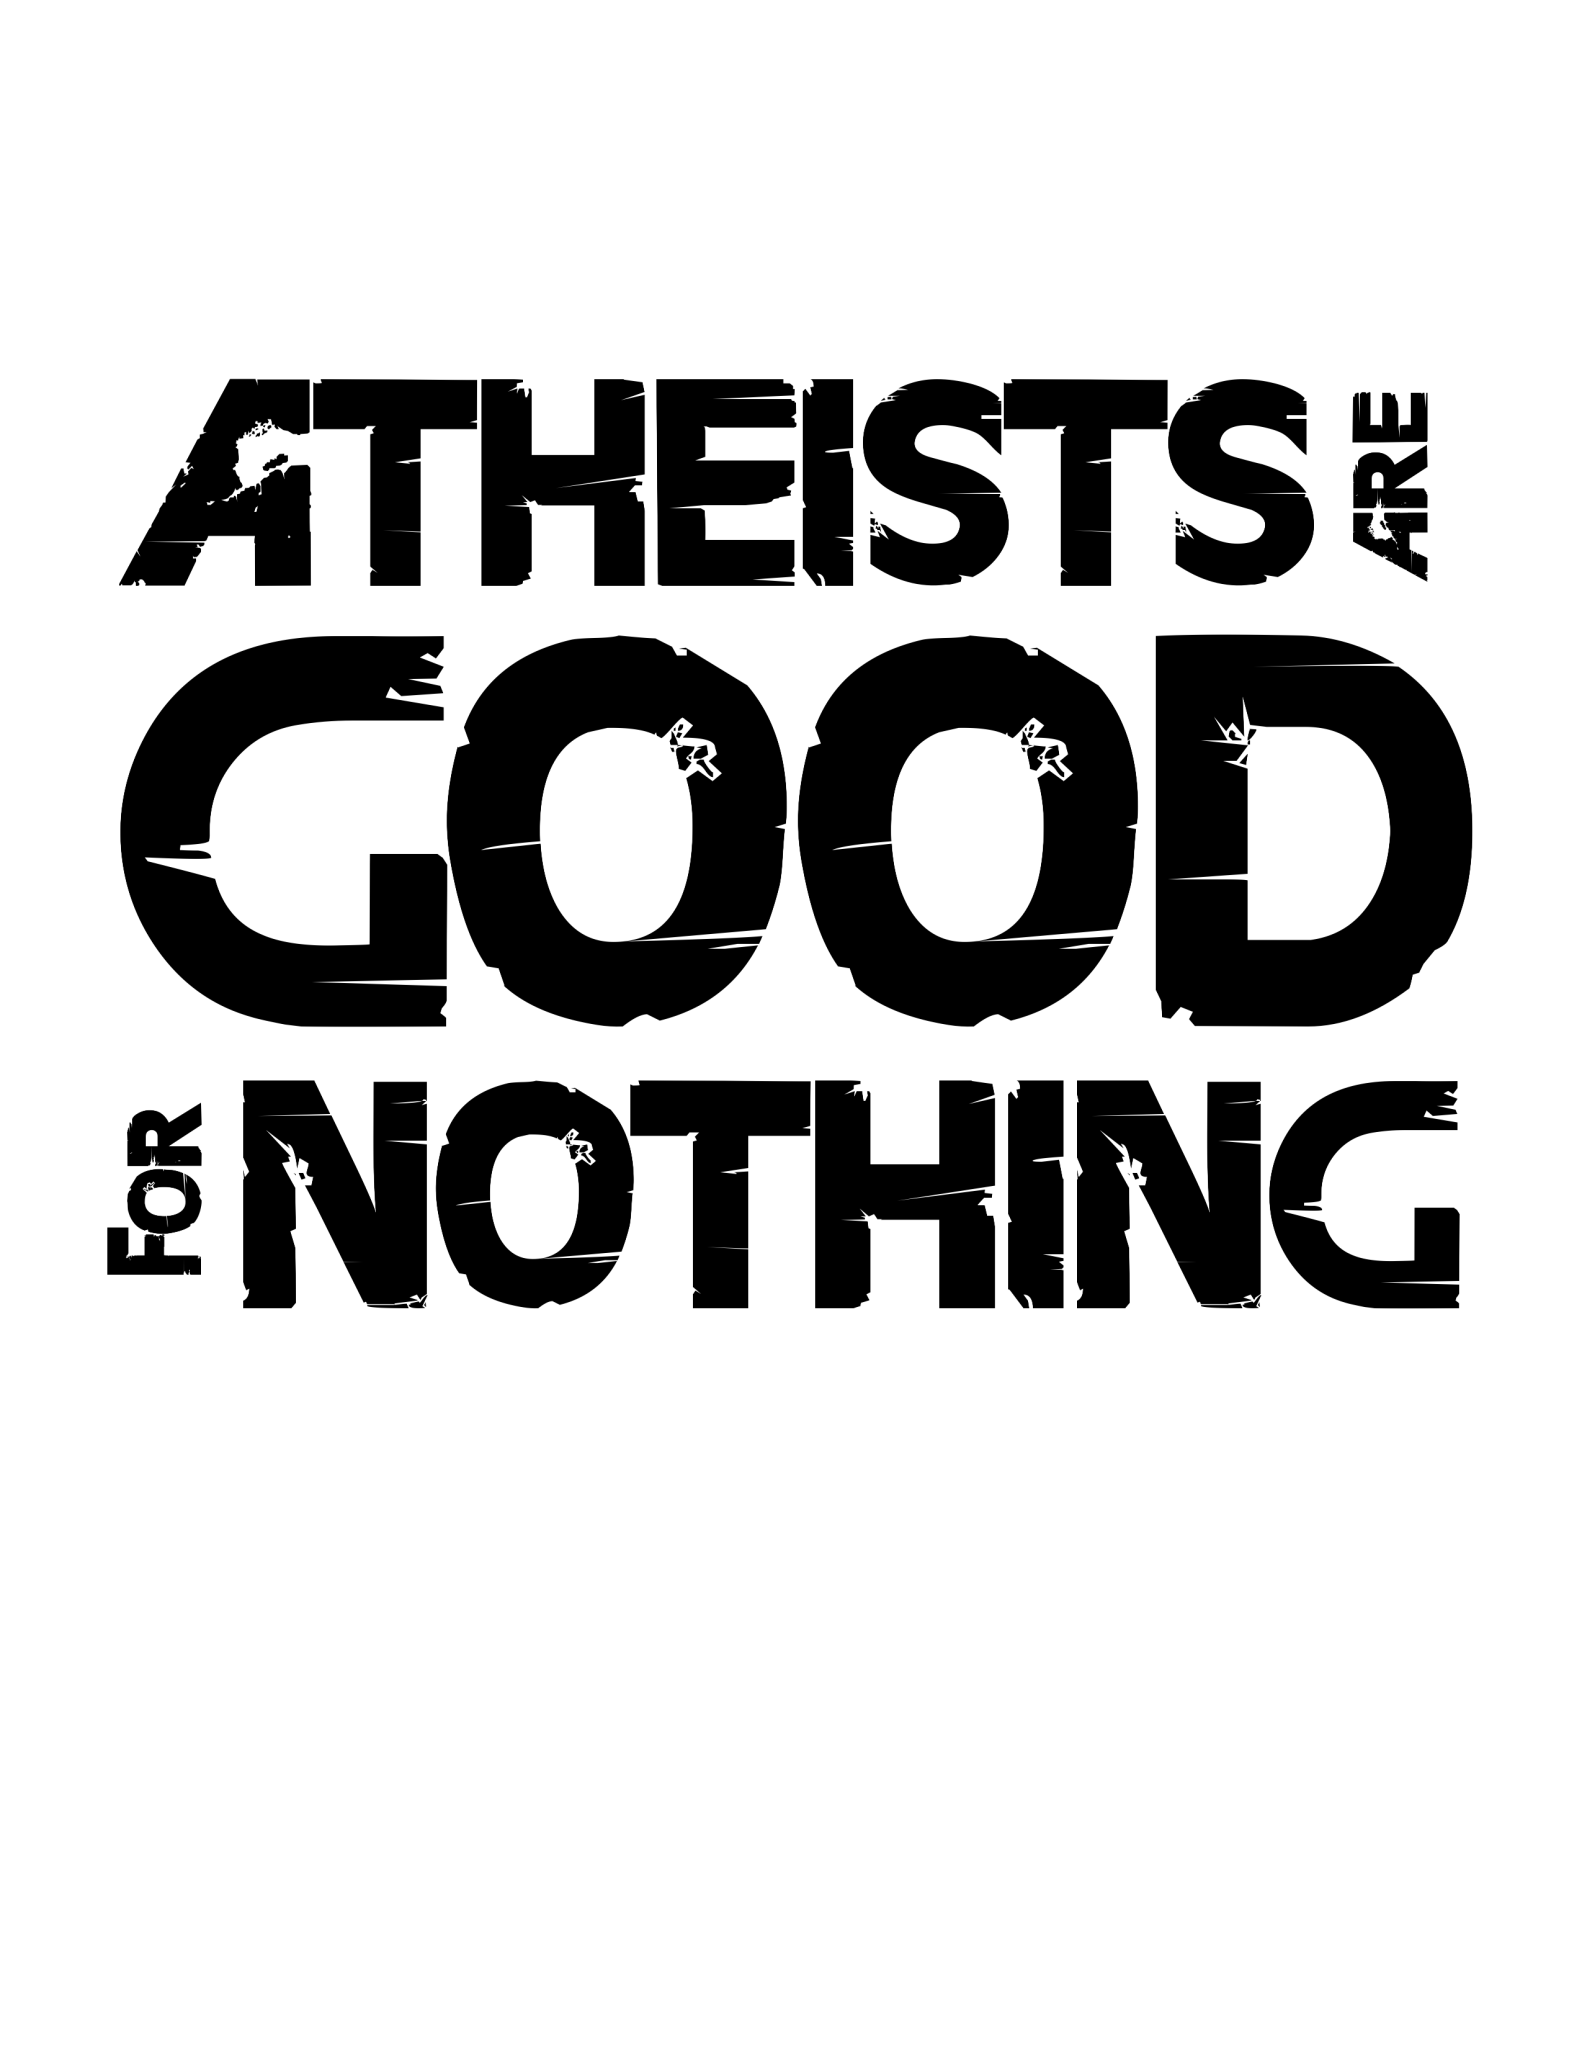 Atheists are good for nothing tee shirt design